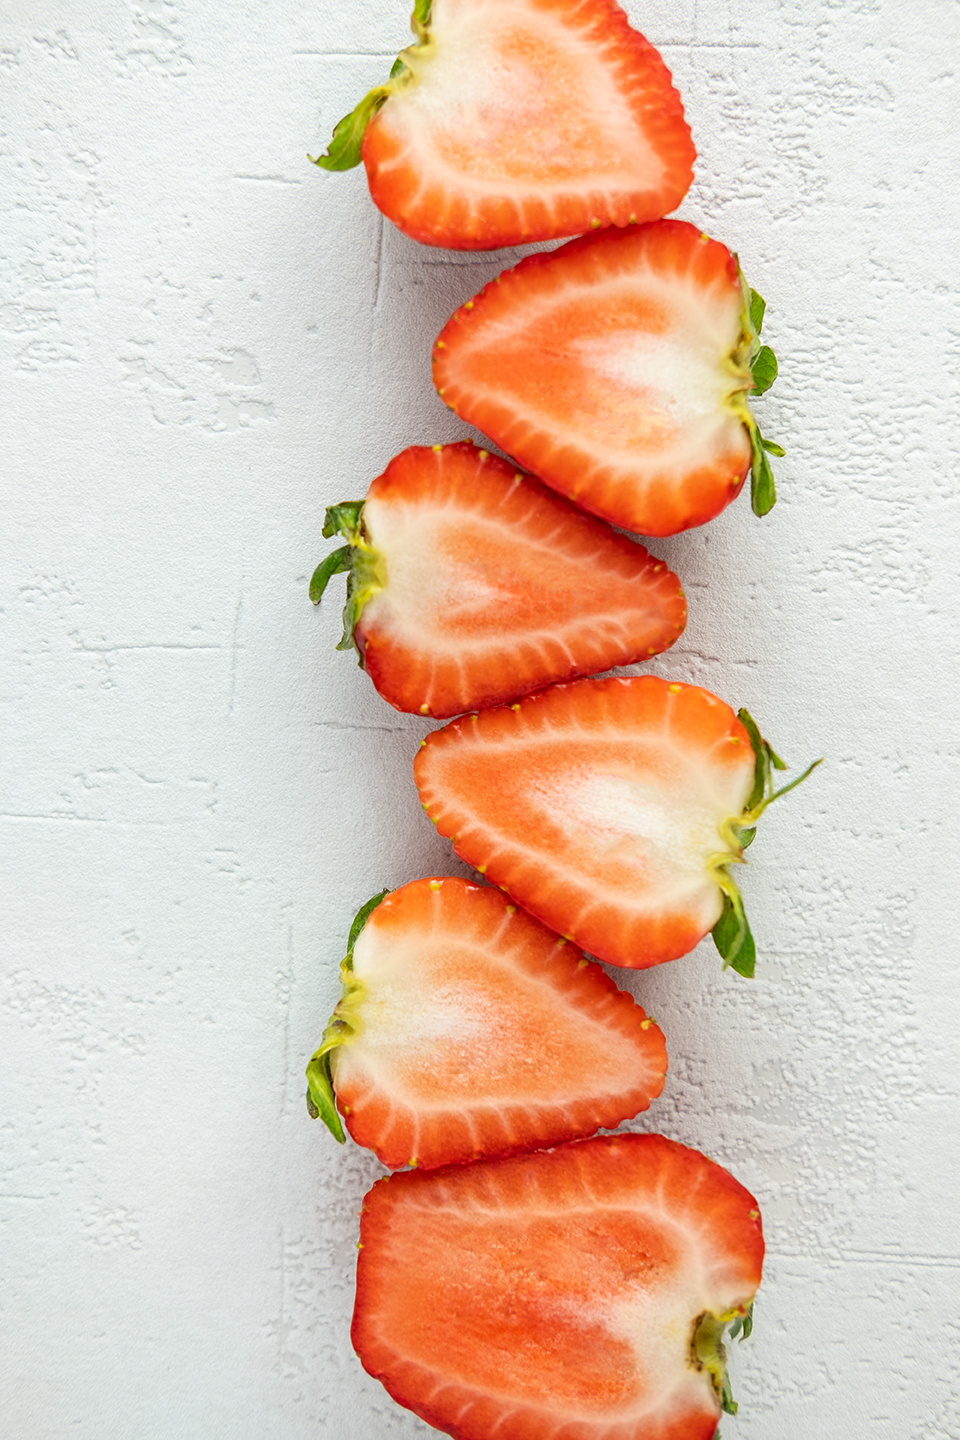 retouched row of sliced strawberries on white background